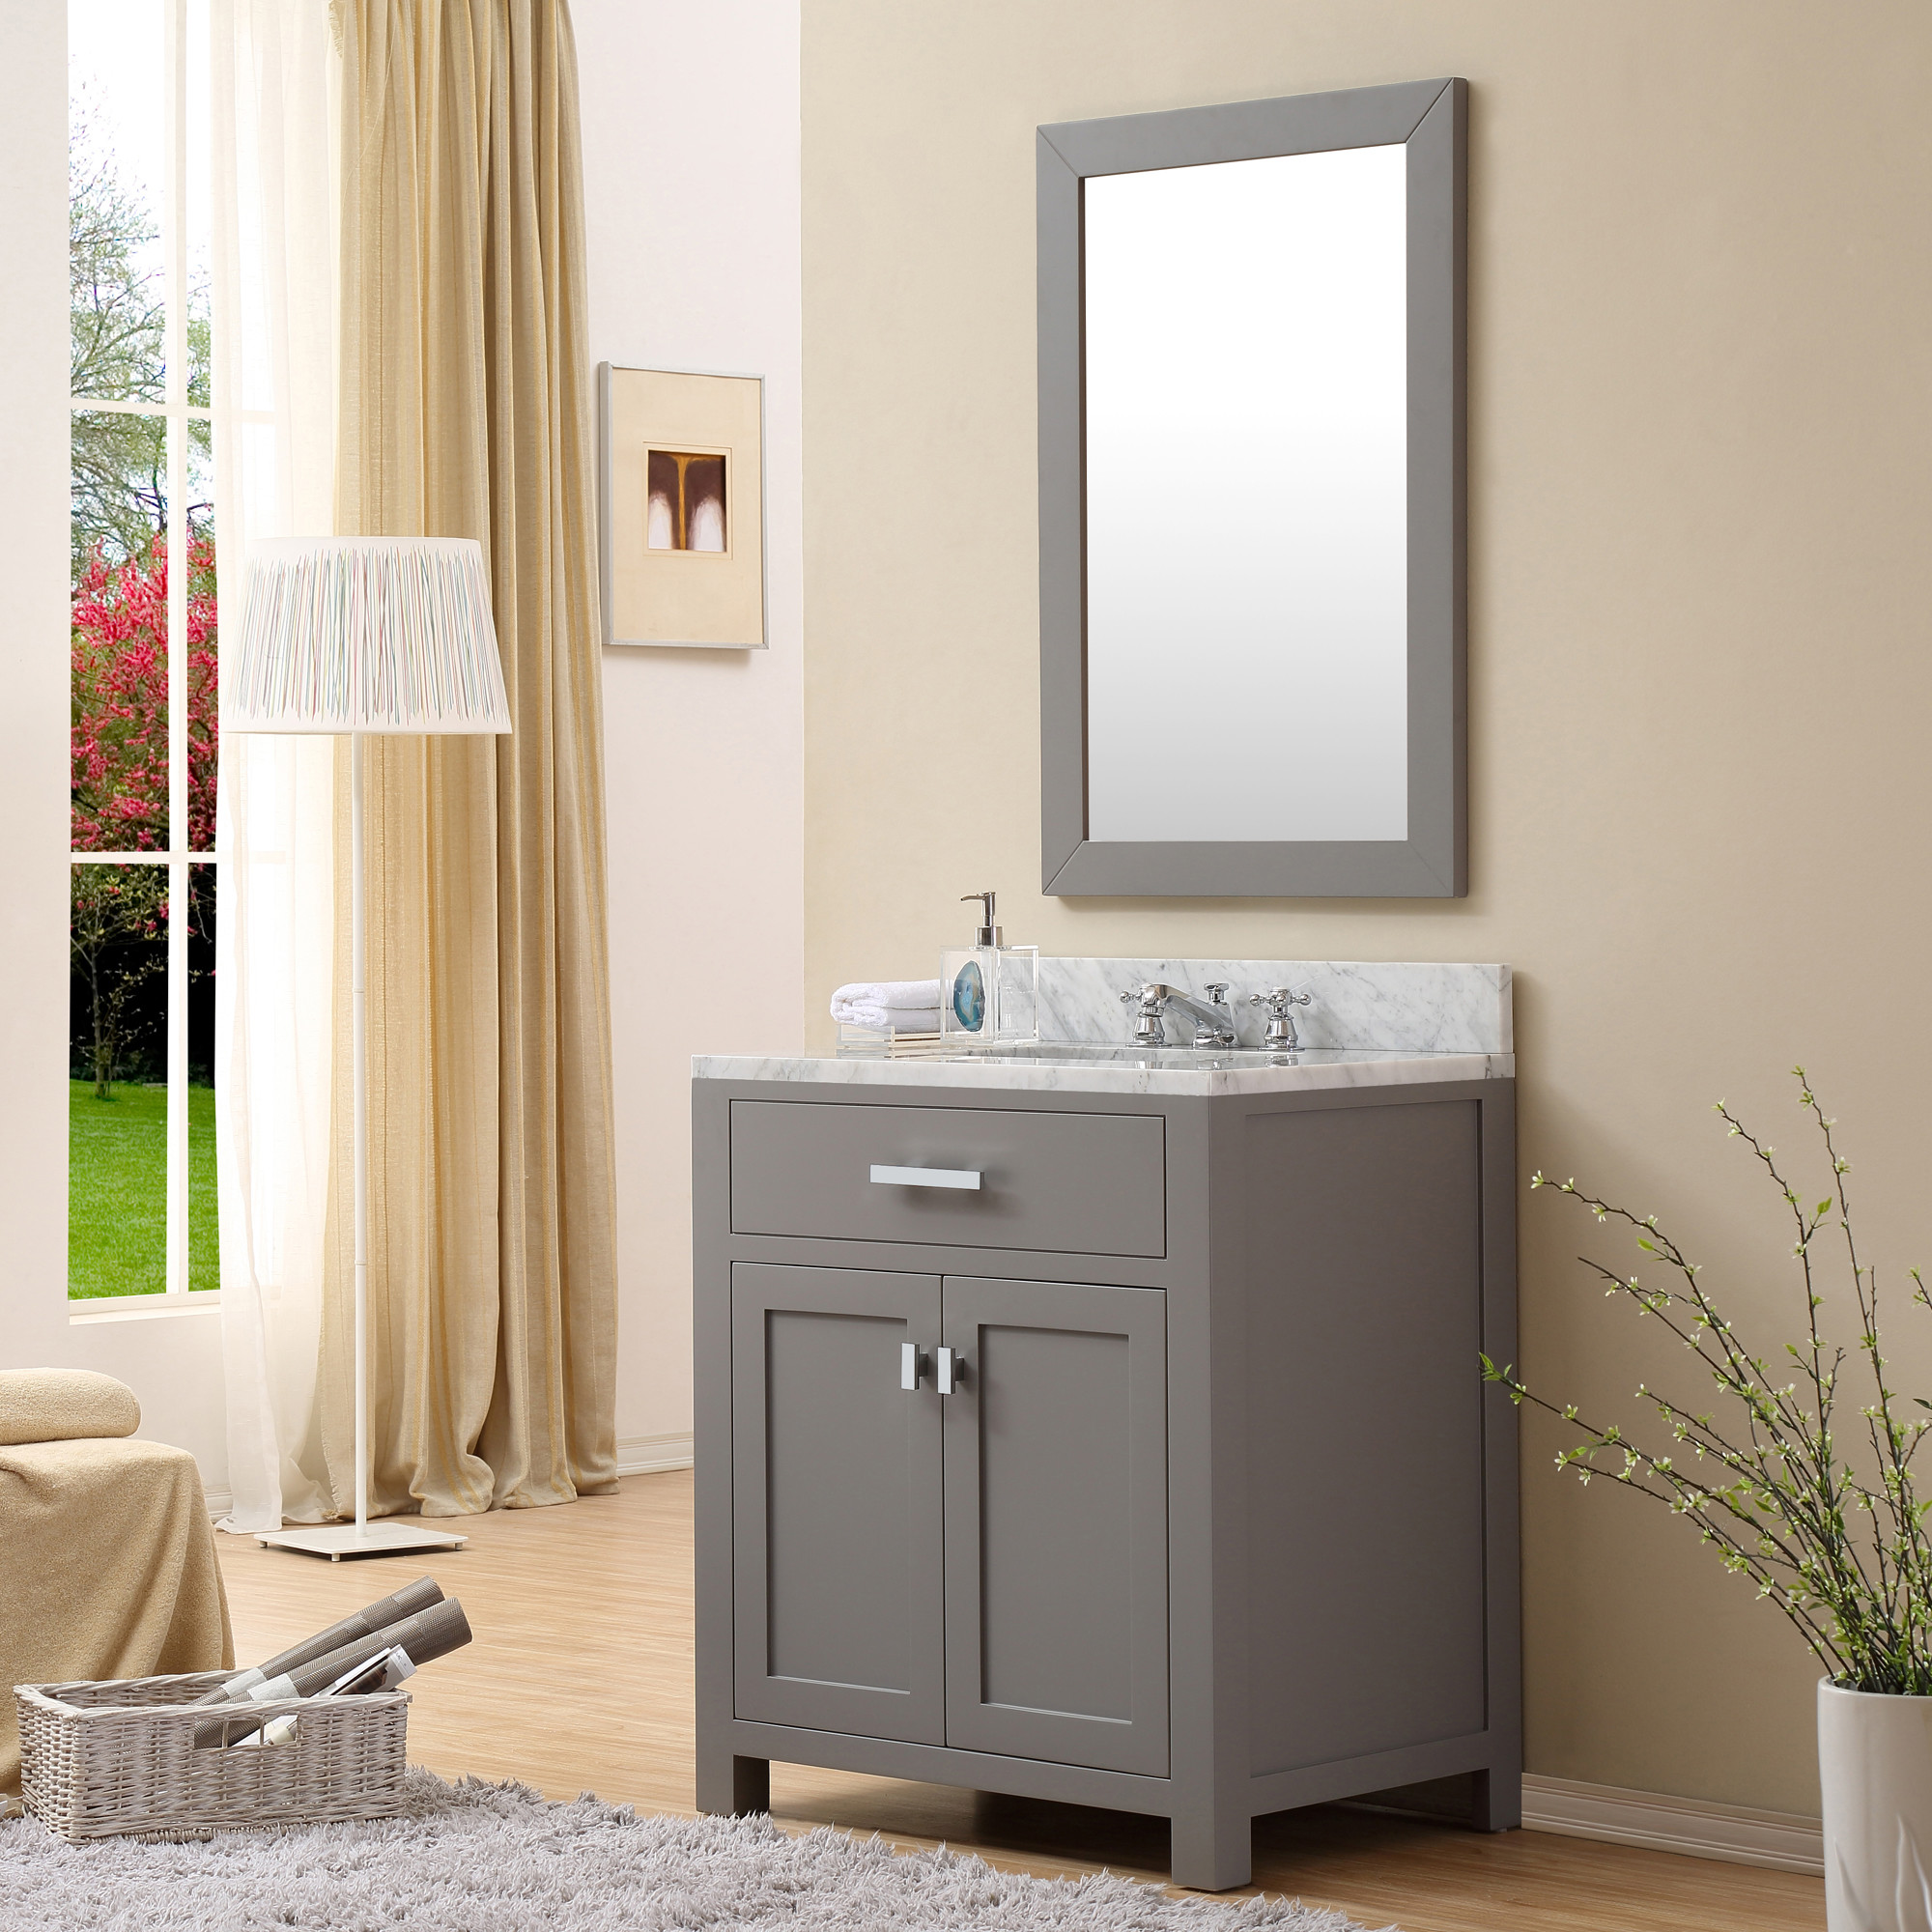 vanity cabinets com with modern option of small for the double gray tops sink vanities faitnv bathroom